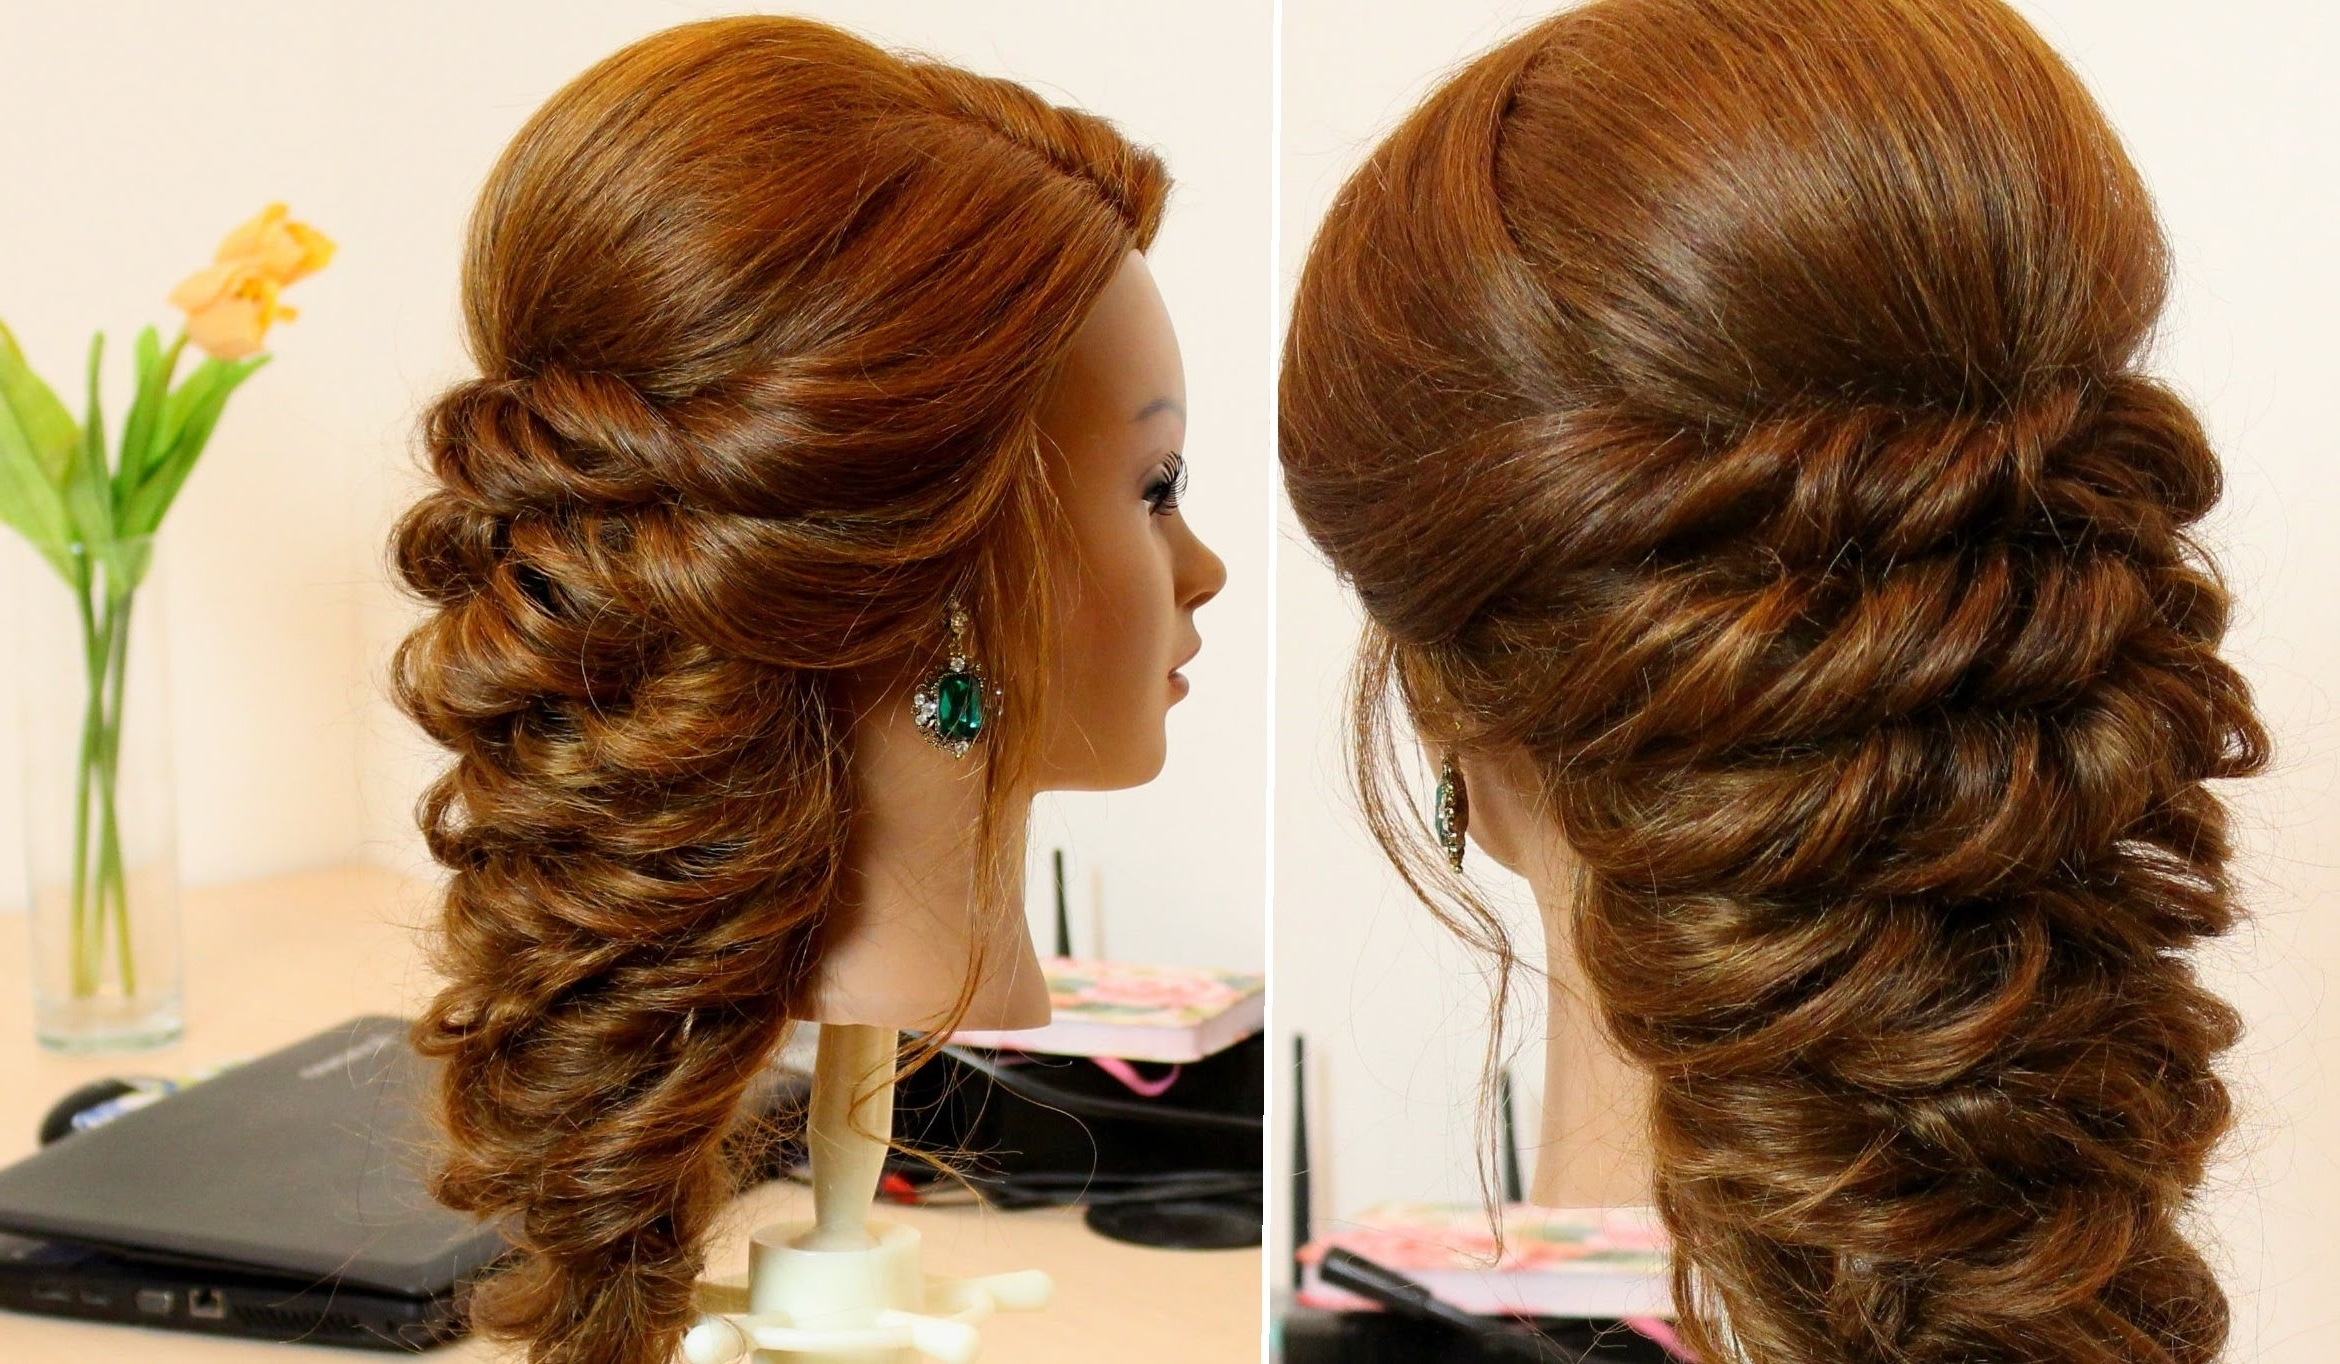 Easy Hairstyle For Long Hair Tutorial – Youtube For Most Recently Released Wedding Hairstyles For Extra Long Hair (View 12 of 15)